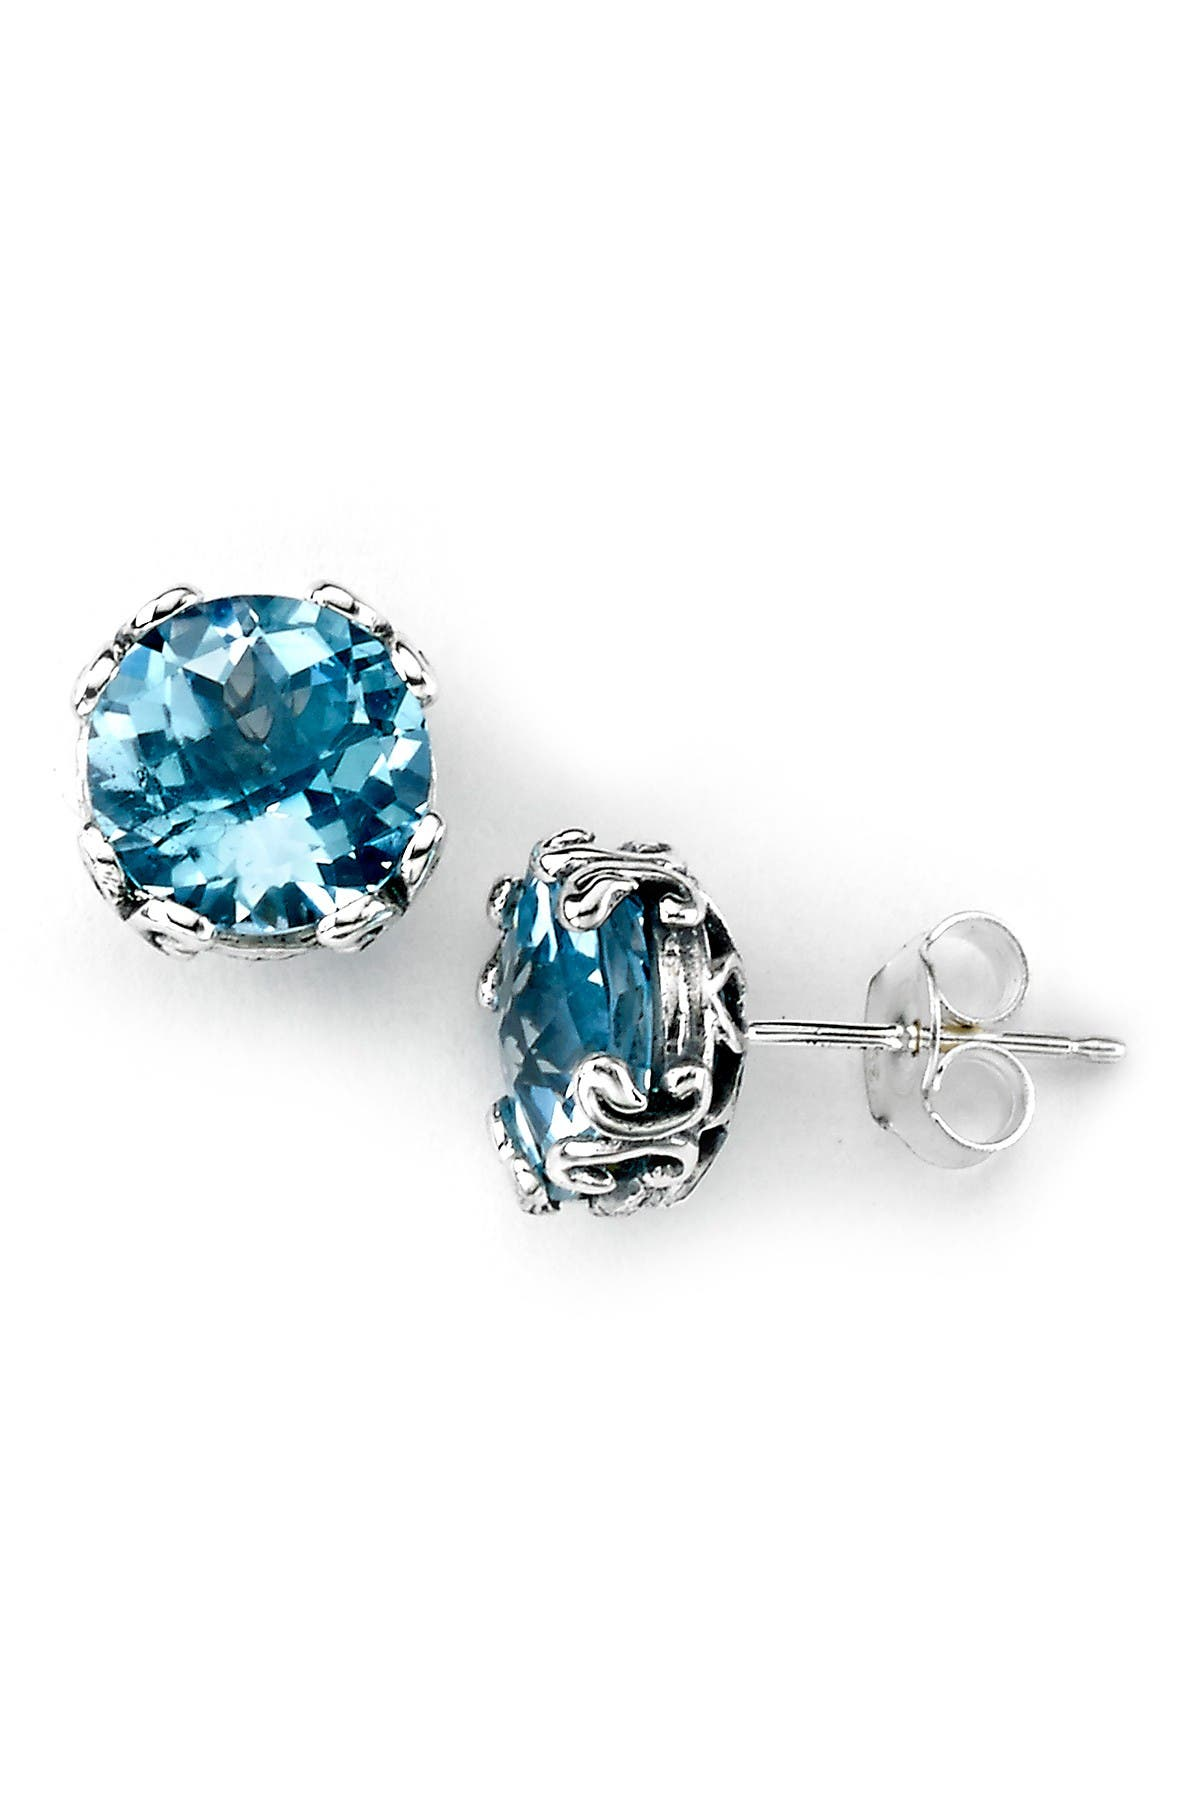 Samuel B Jewelry Sterling Silver Round Blue Topaz Stud Earrings Nordstrom Rack Jewelry designs as well as many other wonderful designers. samuel b jewelry sterling silver round blue topaz stud earrings nordstrom rack